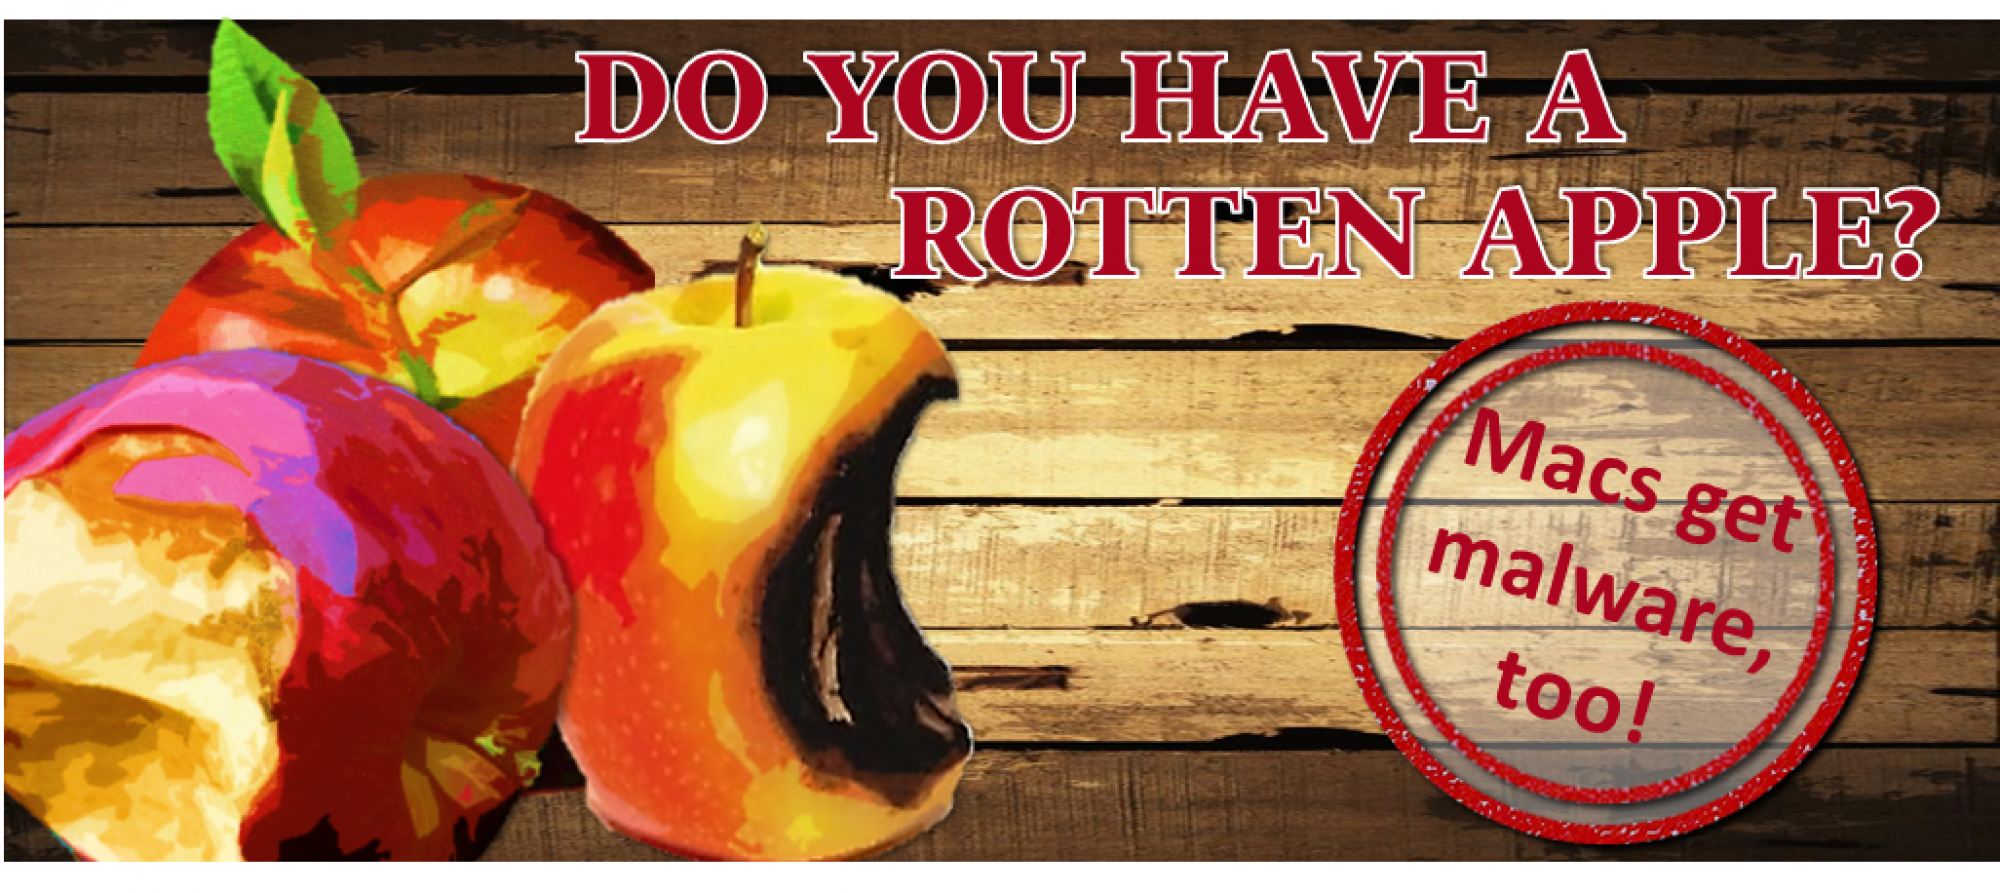 Do you have a rotten apple?